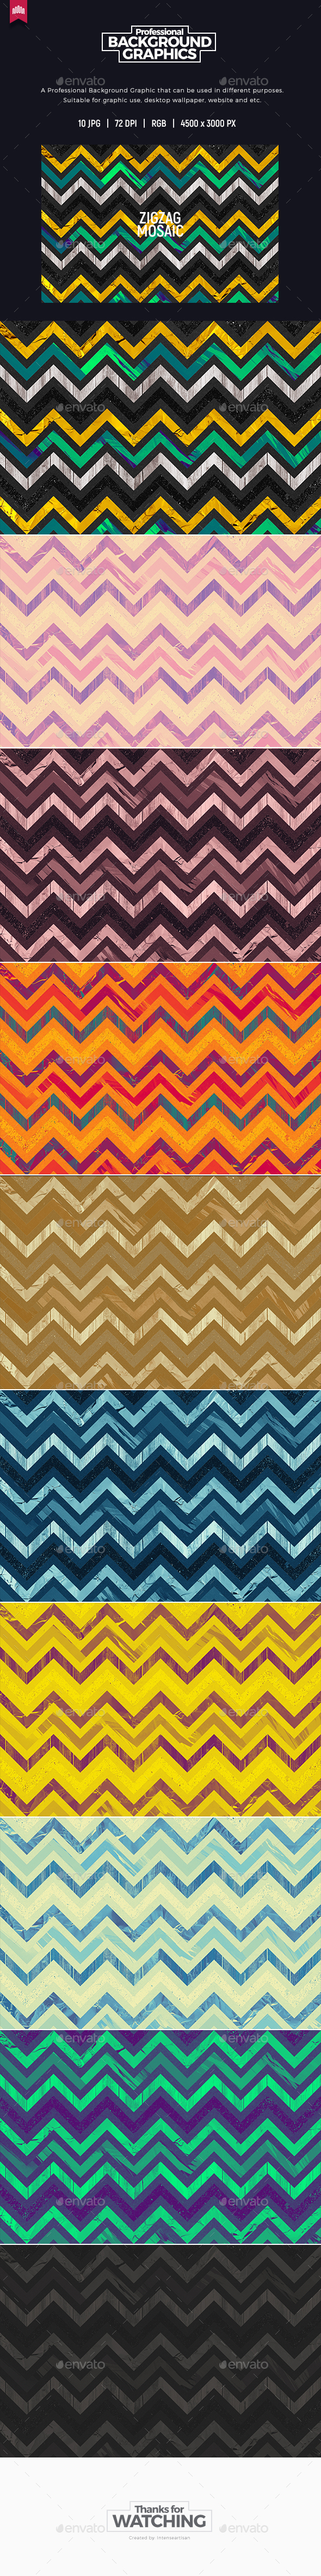 Zigzag Mosaic Background - Patterns Backgrounds